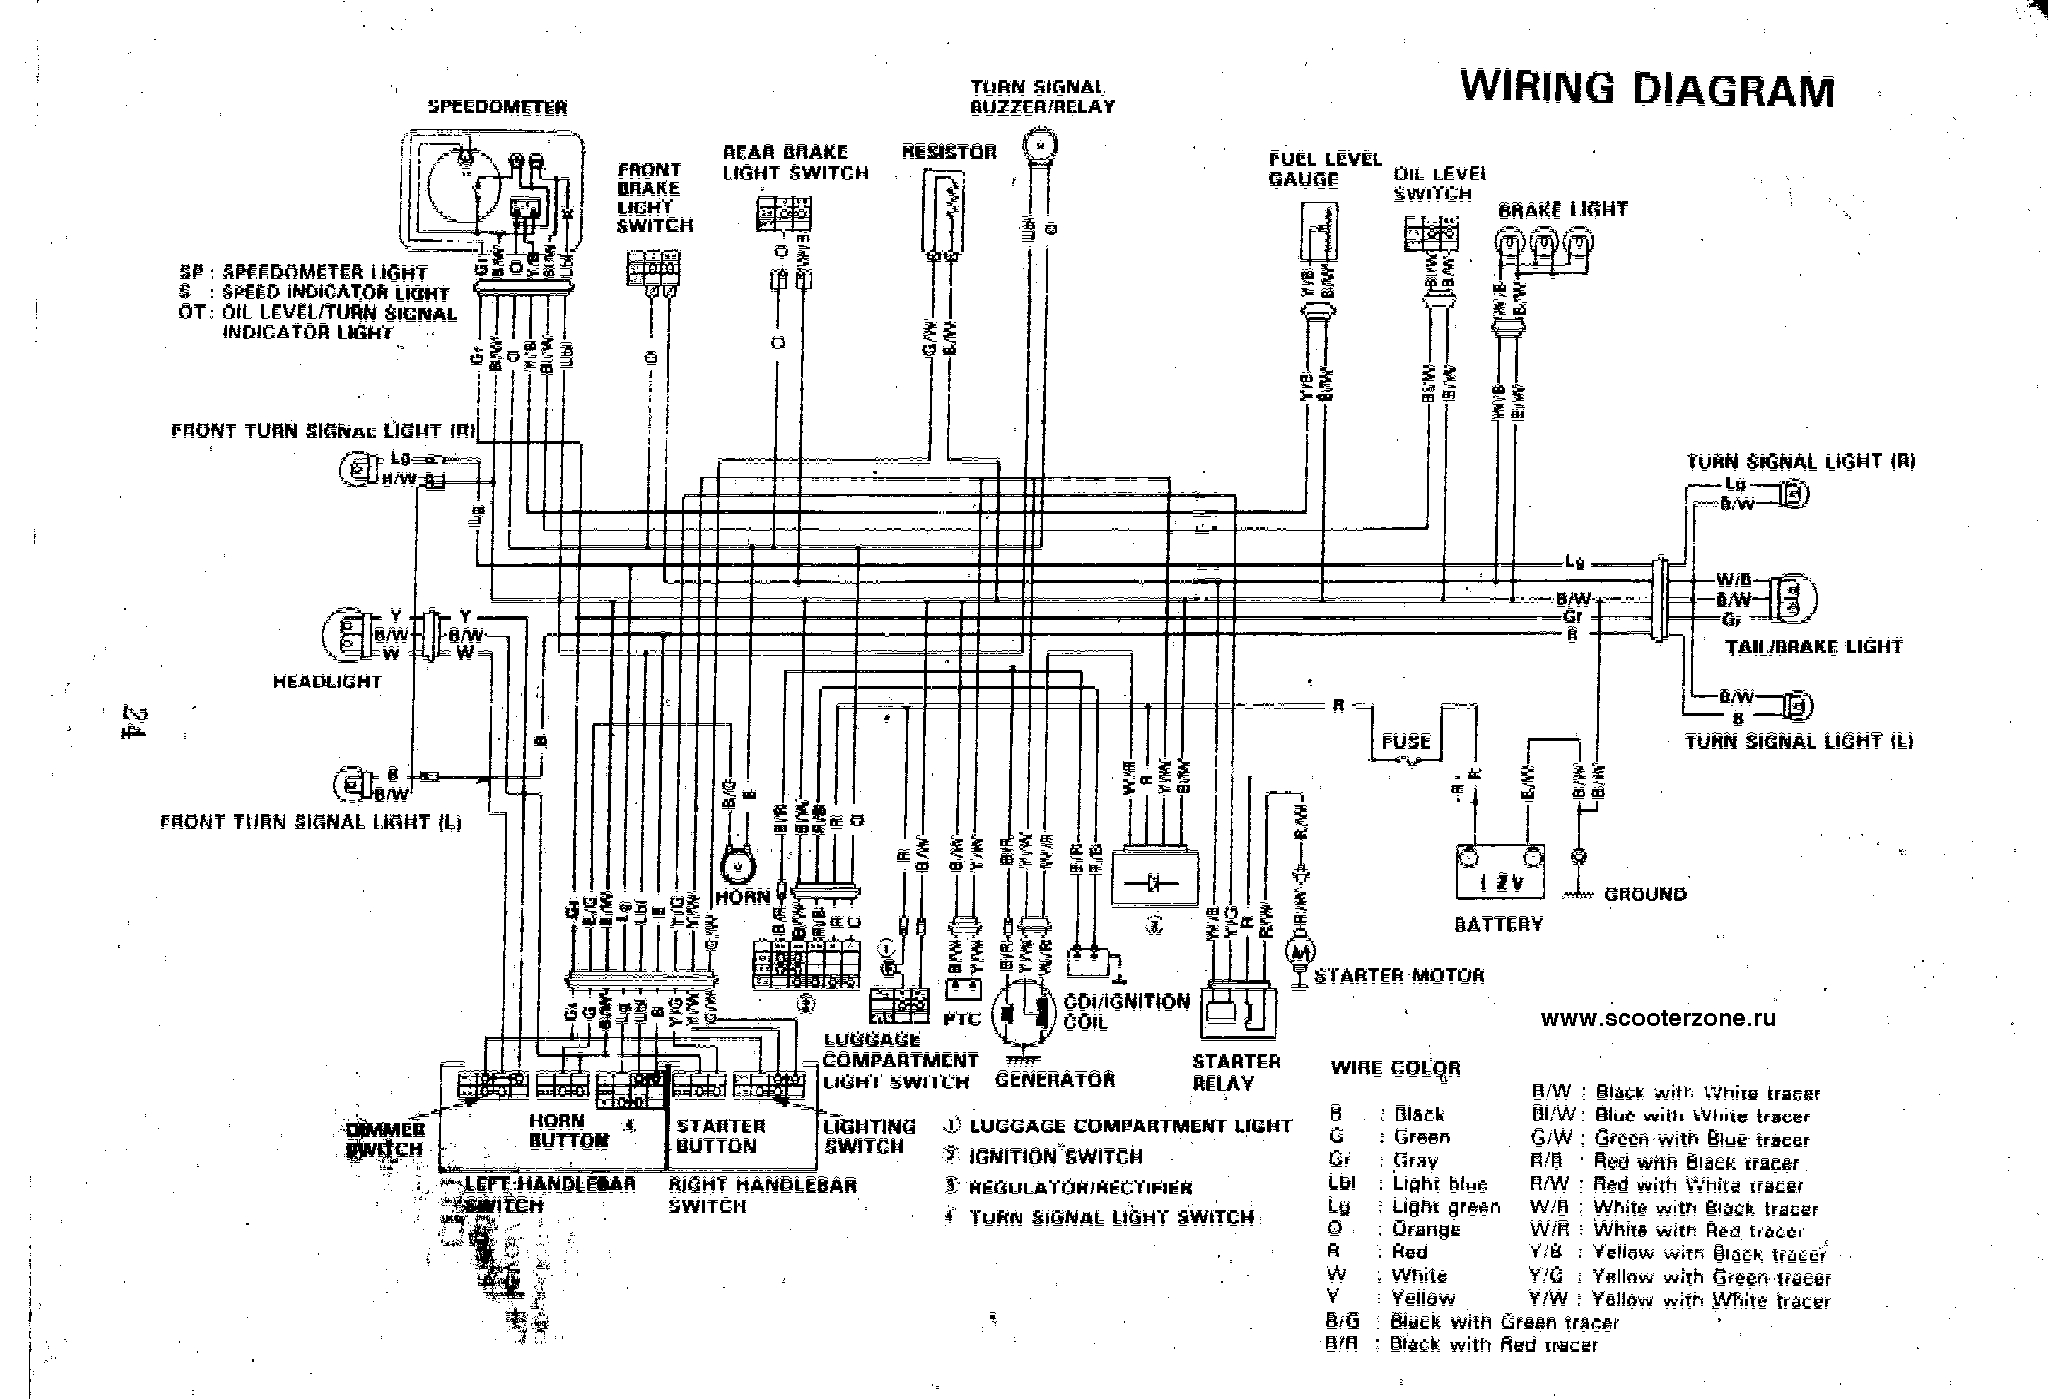 Wiring Diagram Yamaha Pacifica 921 Library 012 Explained Replacement Parts For A